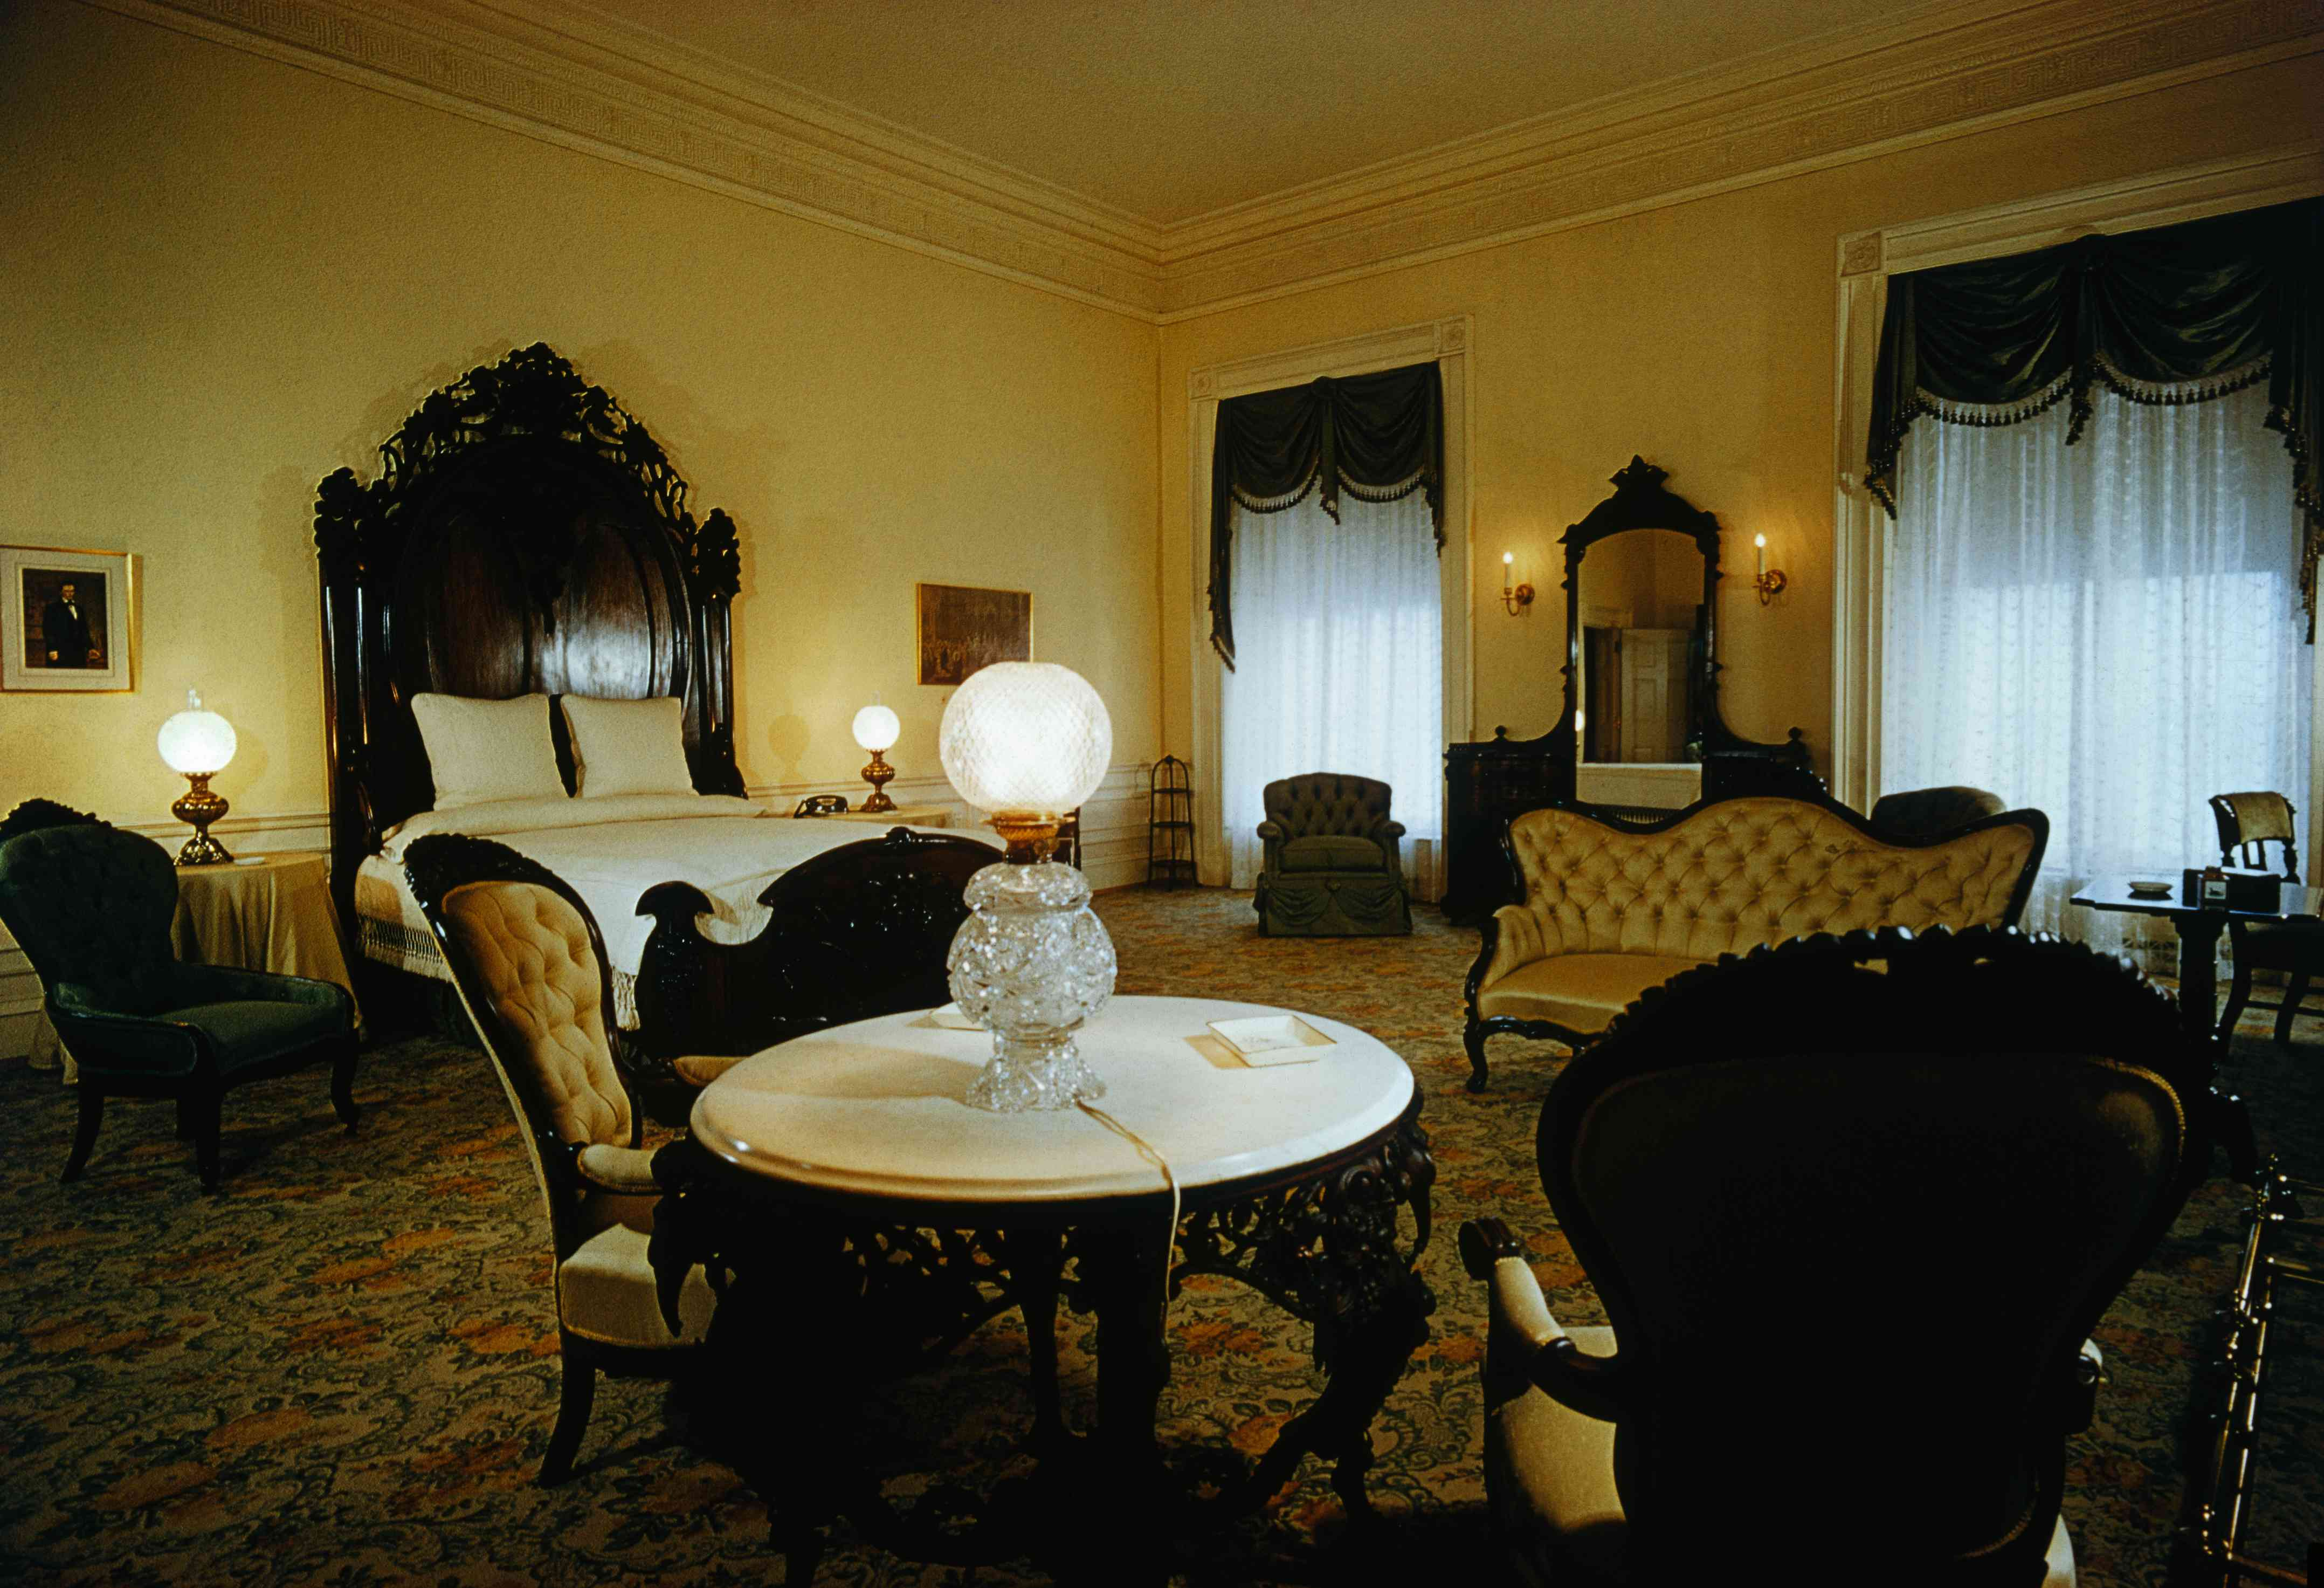 Lincoln Bedroom Ghost Stories and White House Ghosts